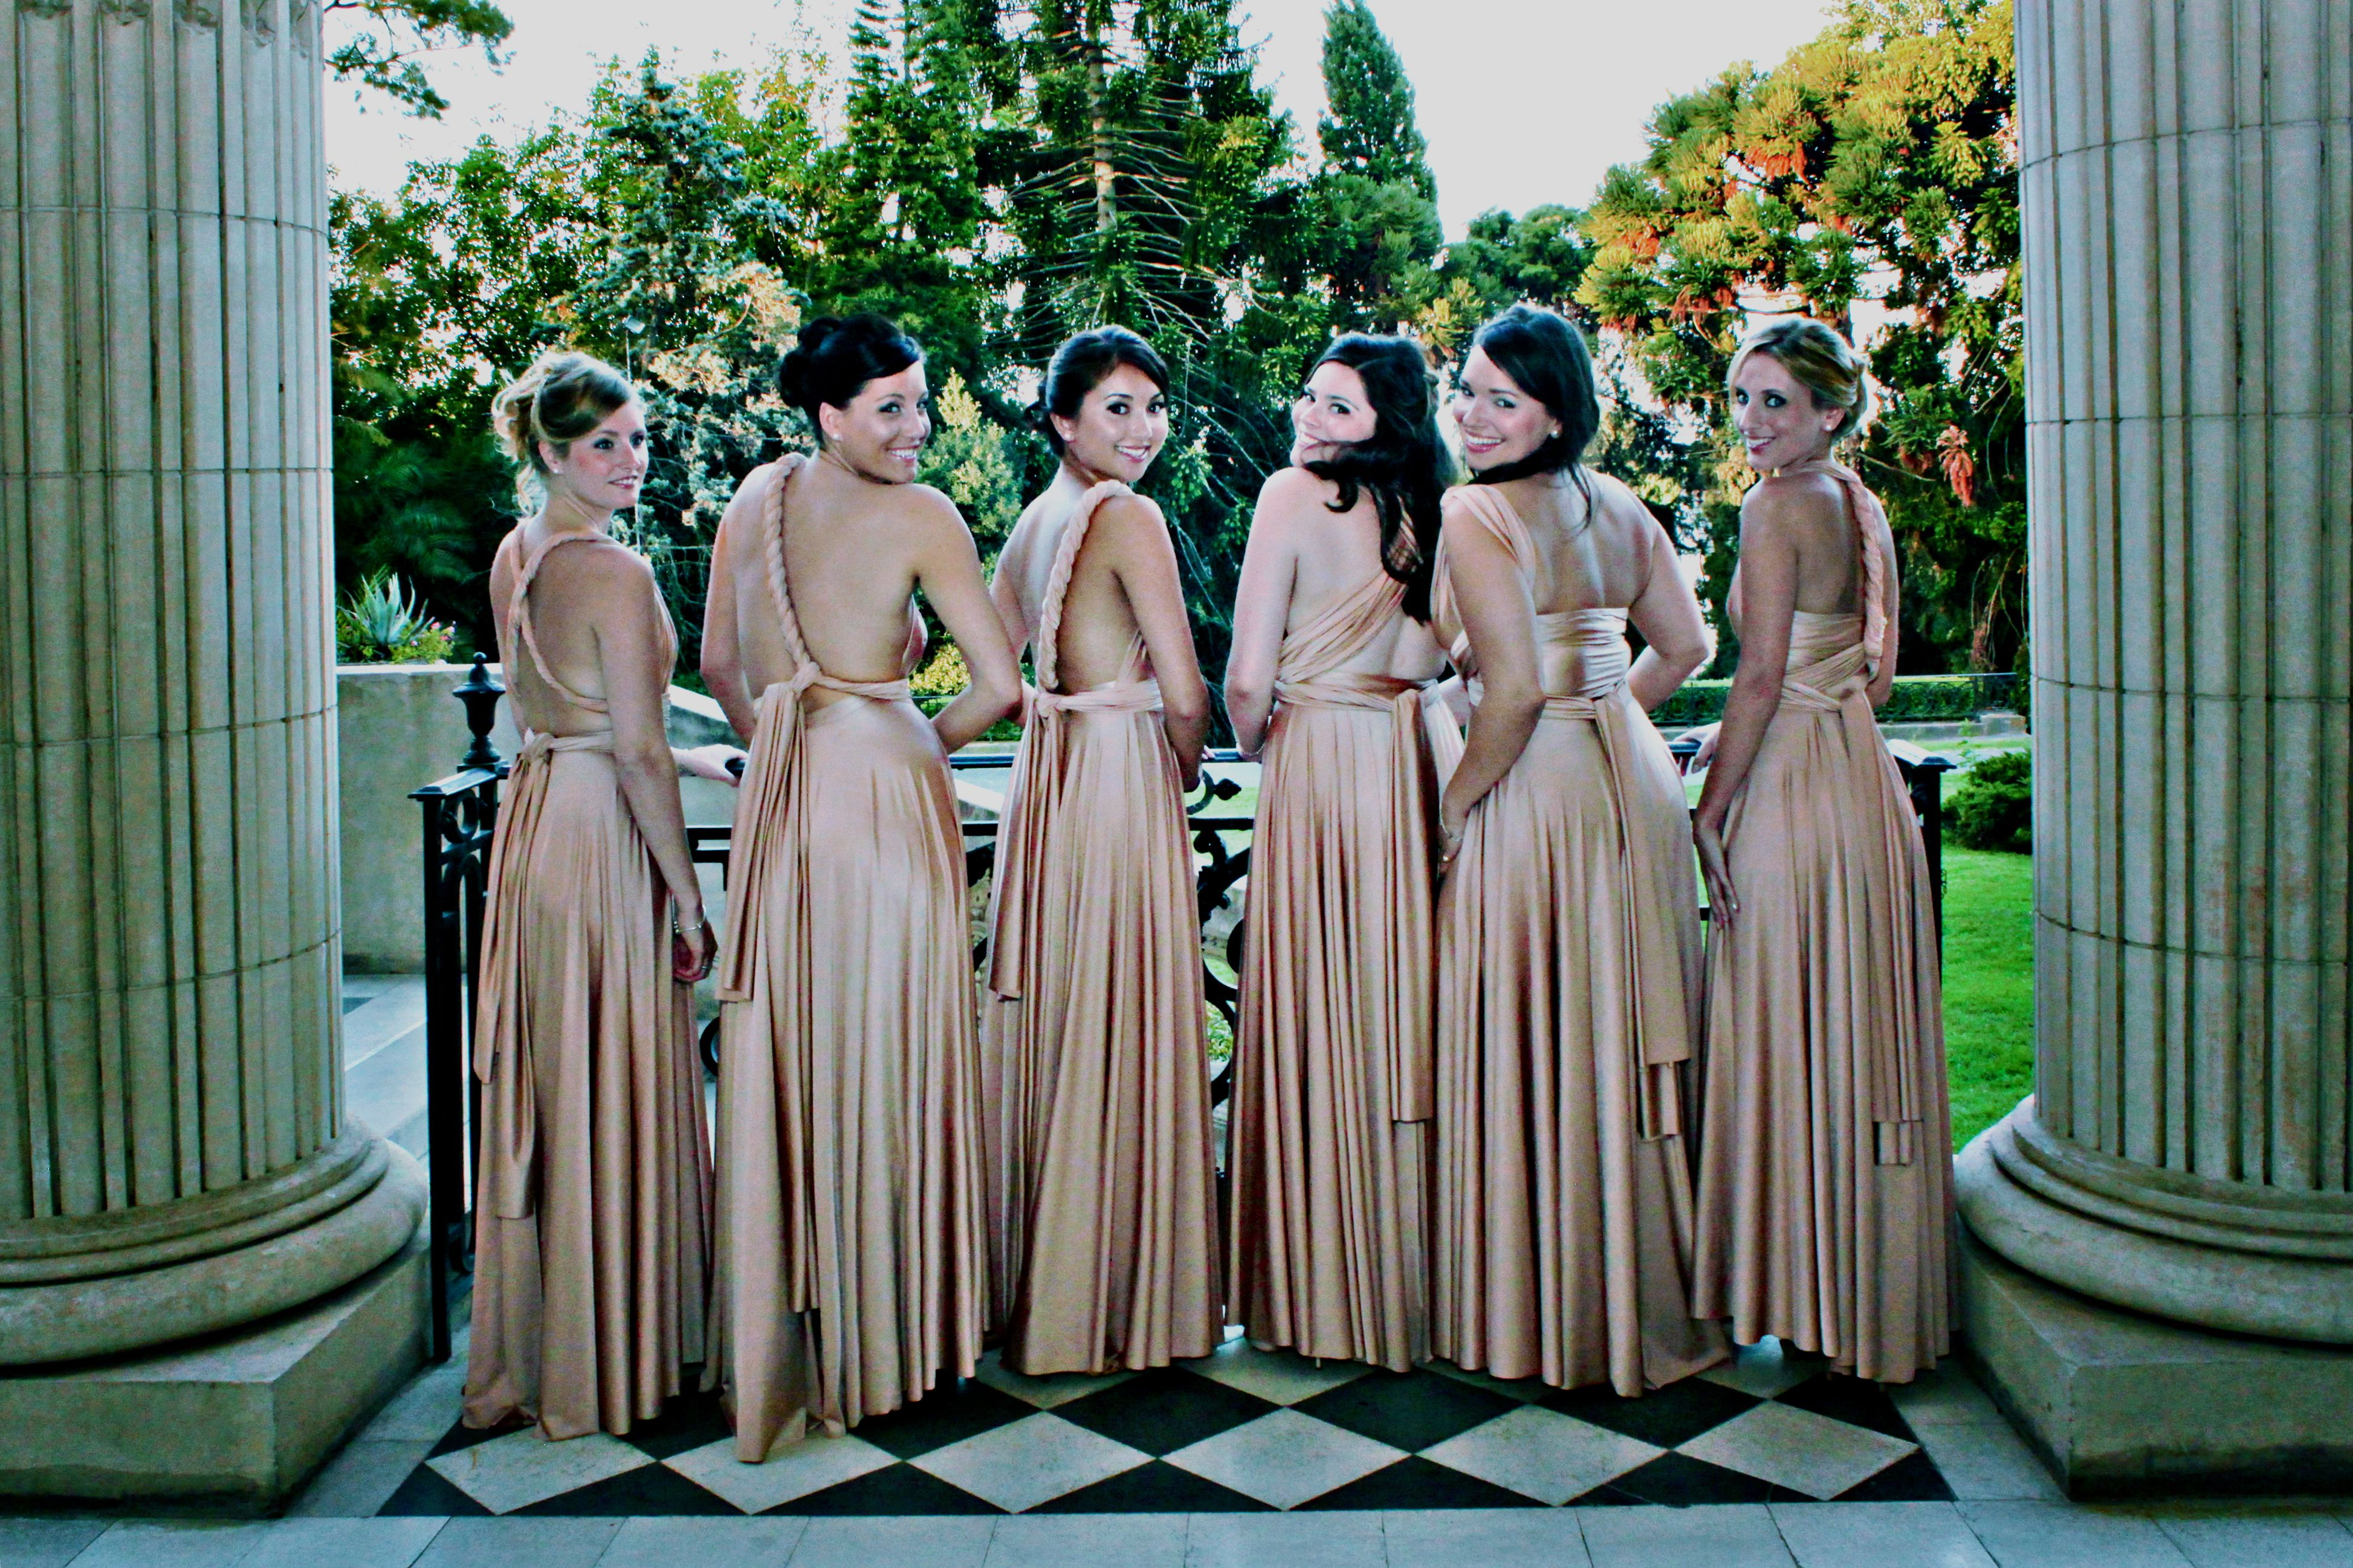 Stunning girls in our rosewater ballgowns twobirds bridesmaid stunning girls in our rosewater ballgowns twobirds bridesmaid dress a real wedding featuring our ombrellifo Choice Image